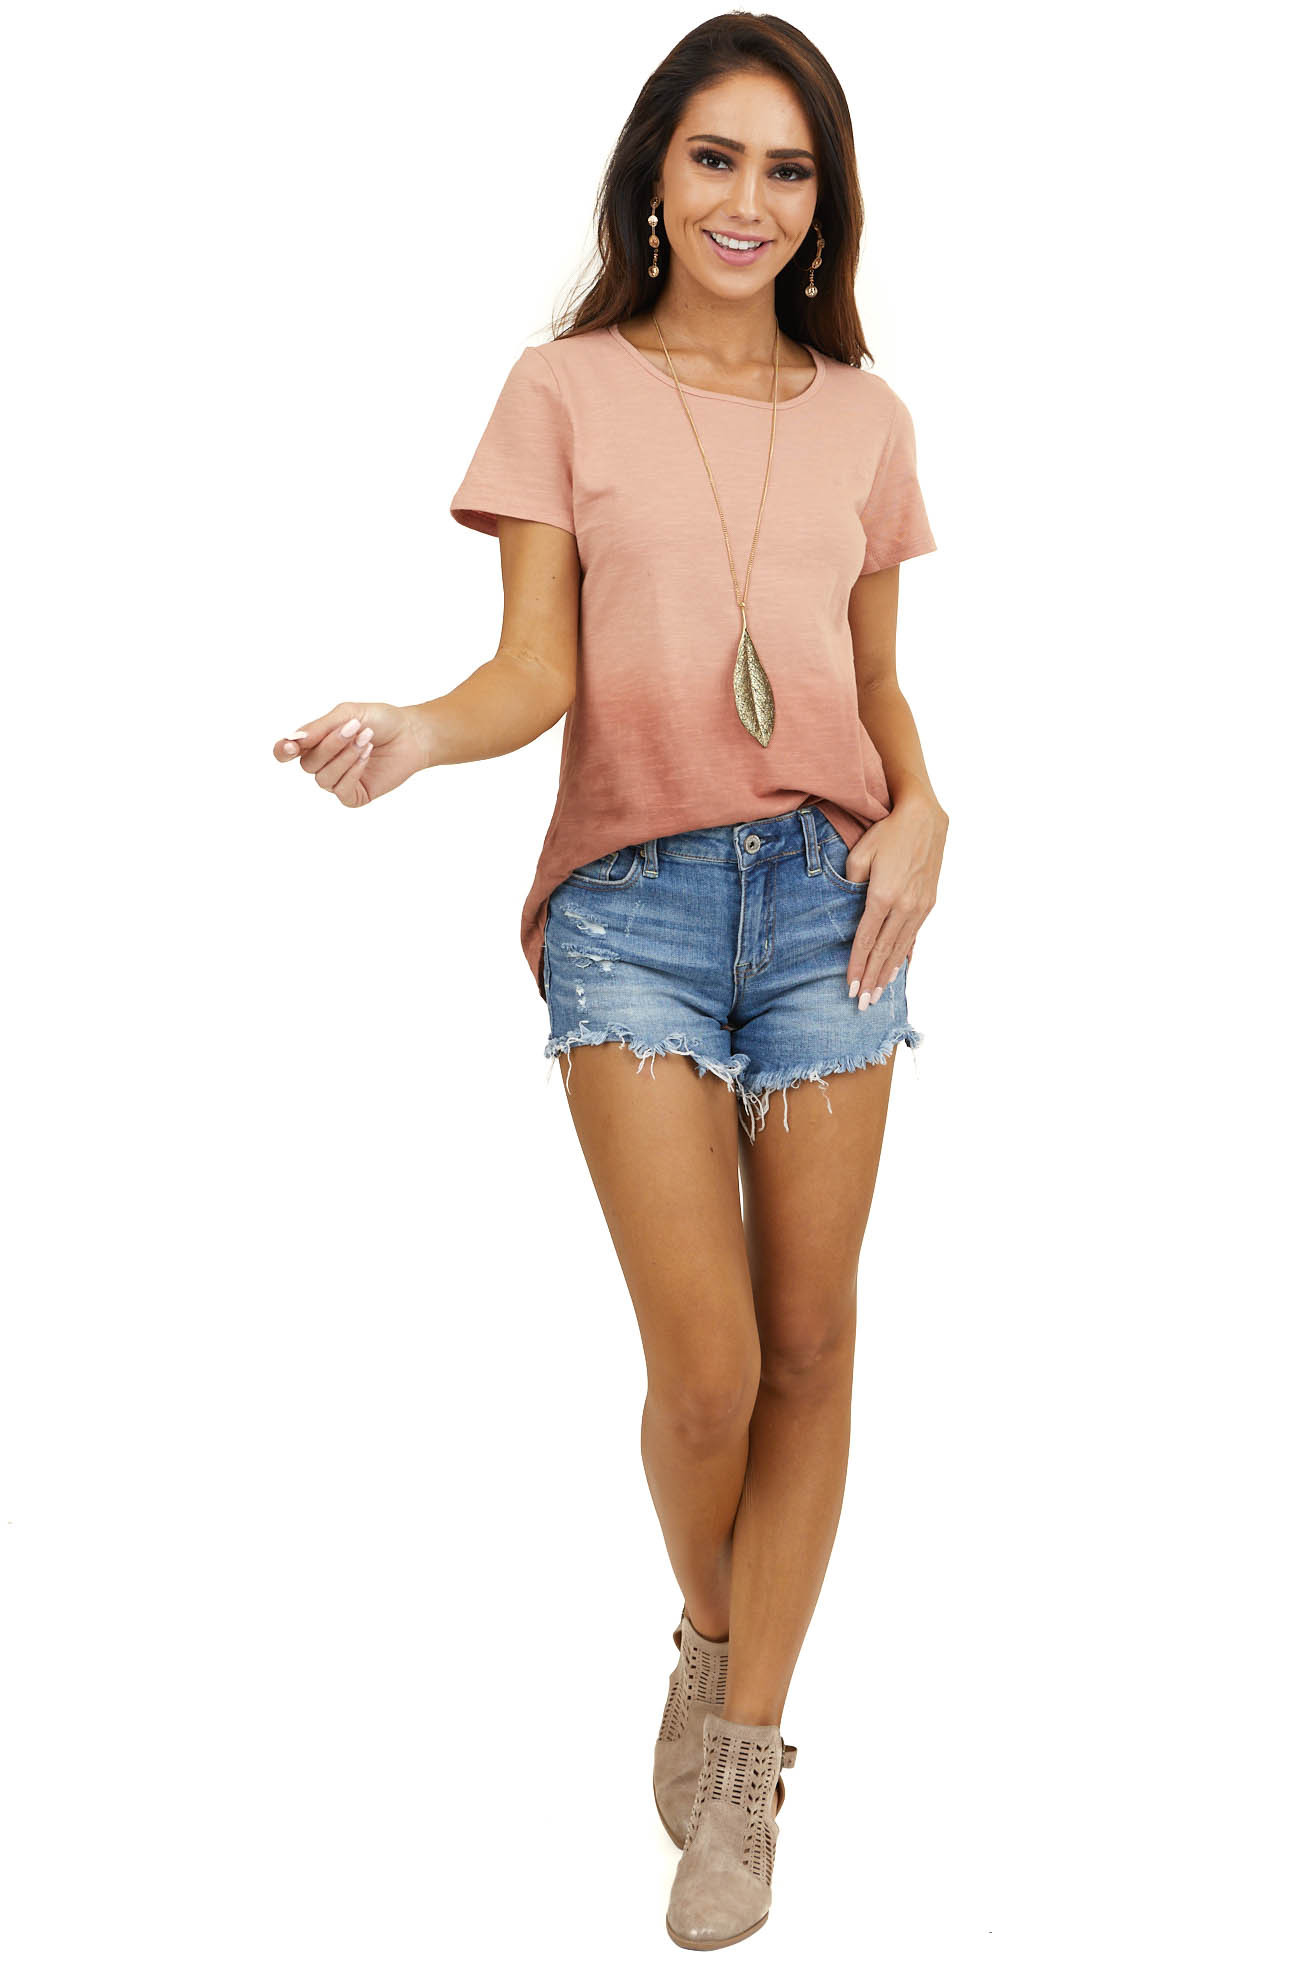 Heathered Peach Ombre Short Sleeve Top with High Low Hemline